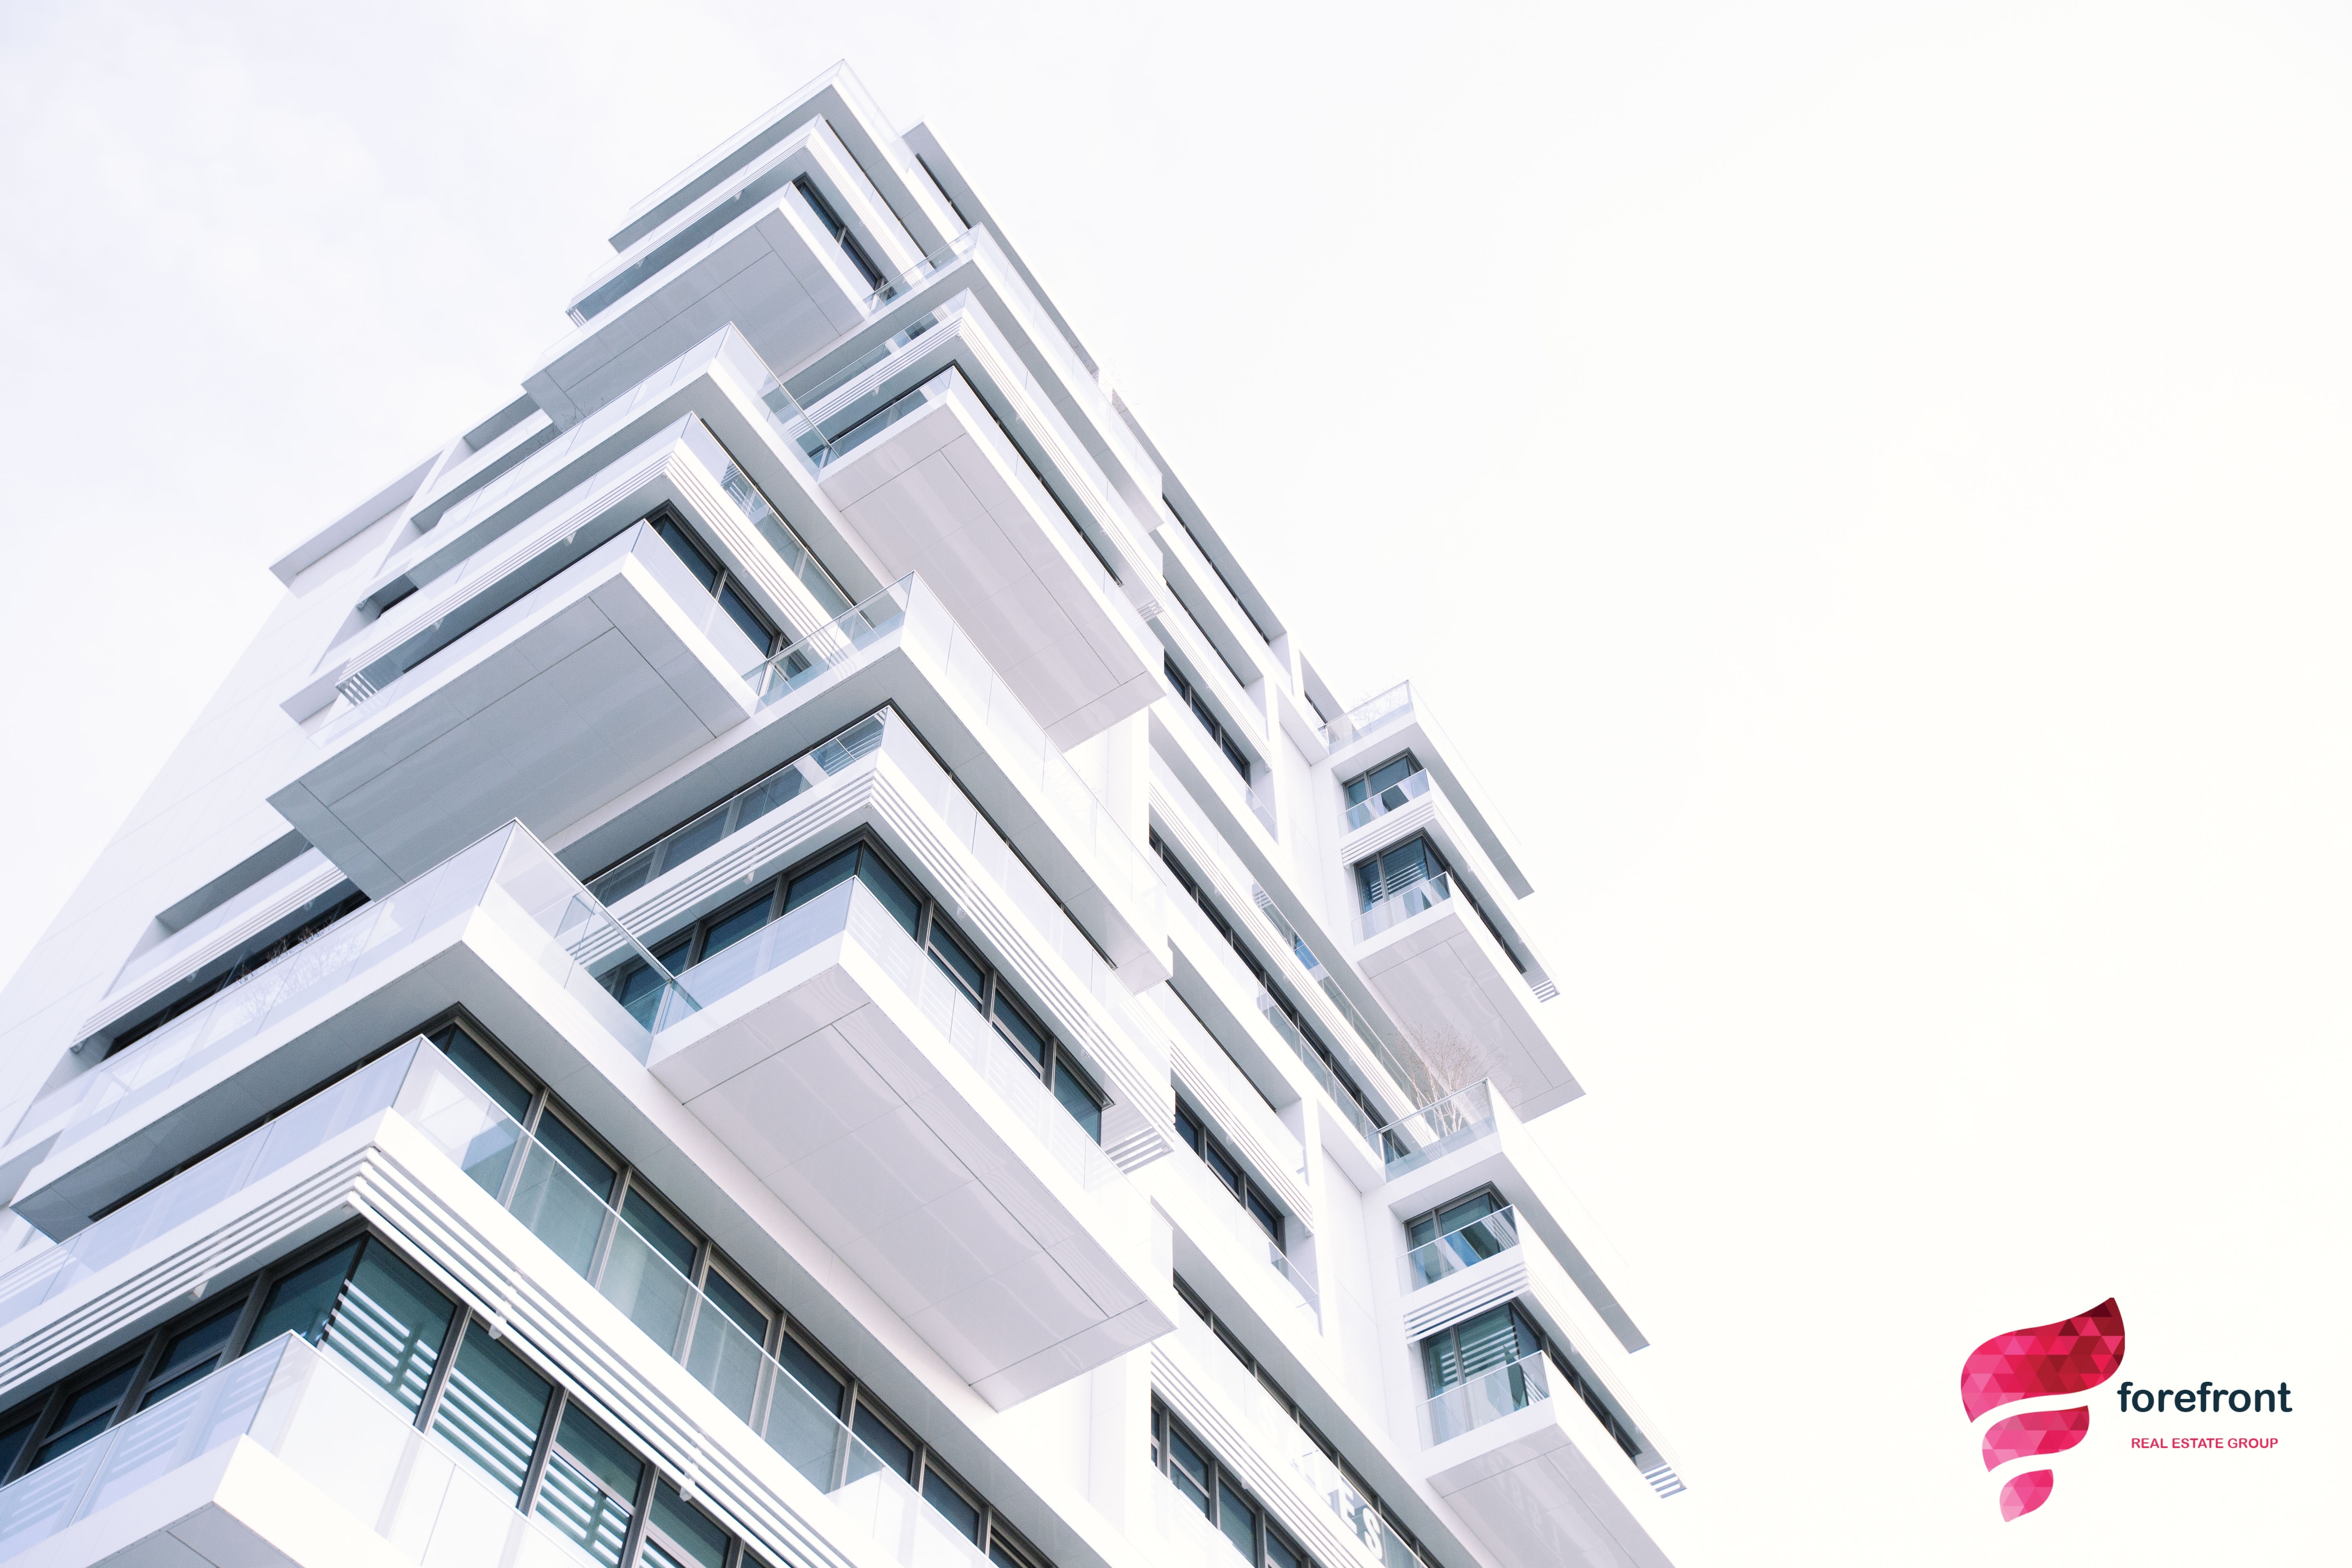 Case Study_How Forefront Real Estate Group Is Changing The Game